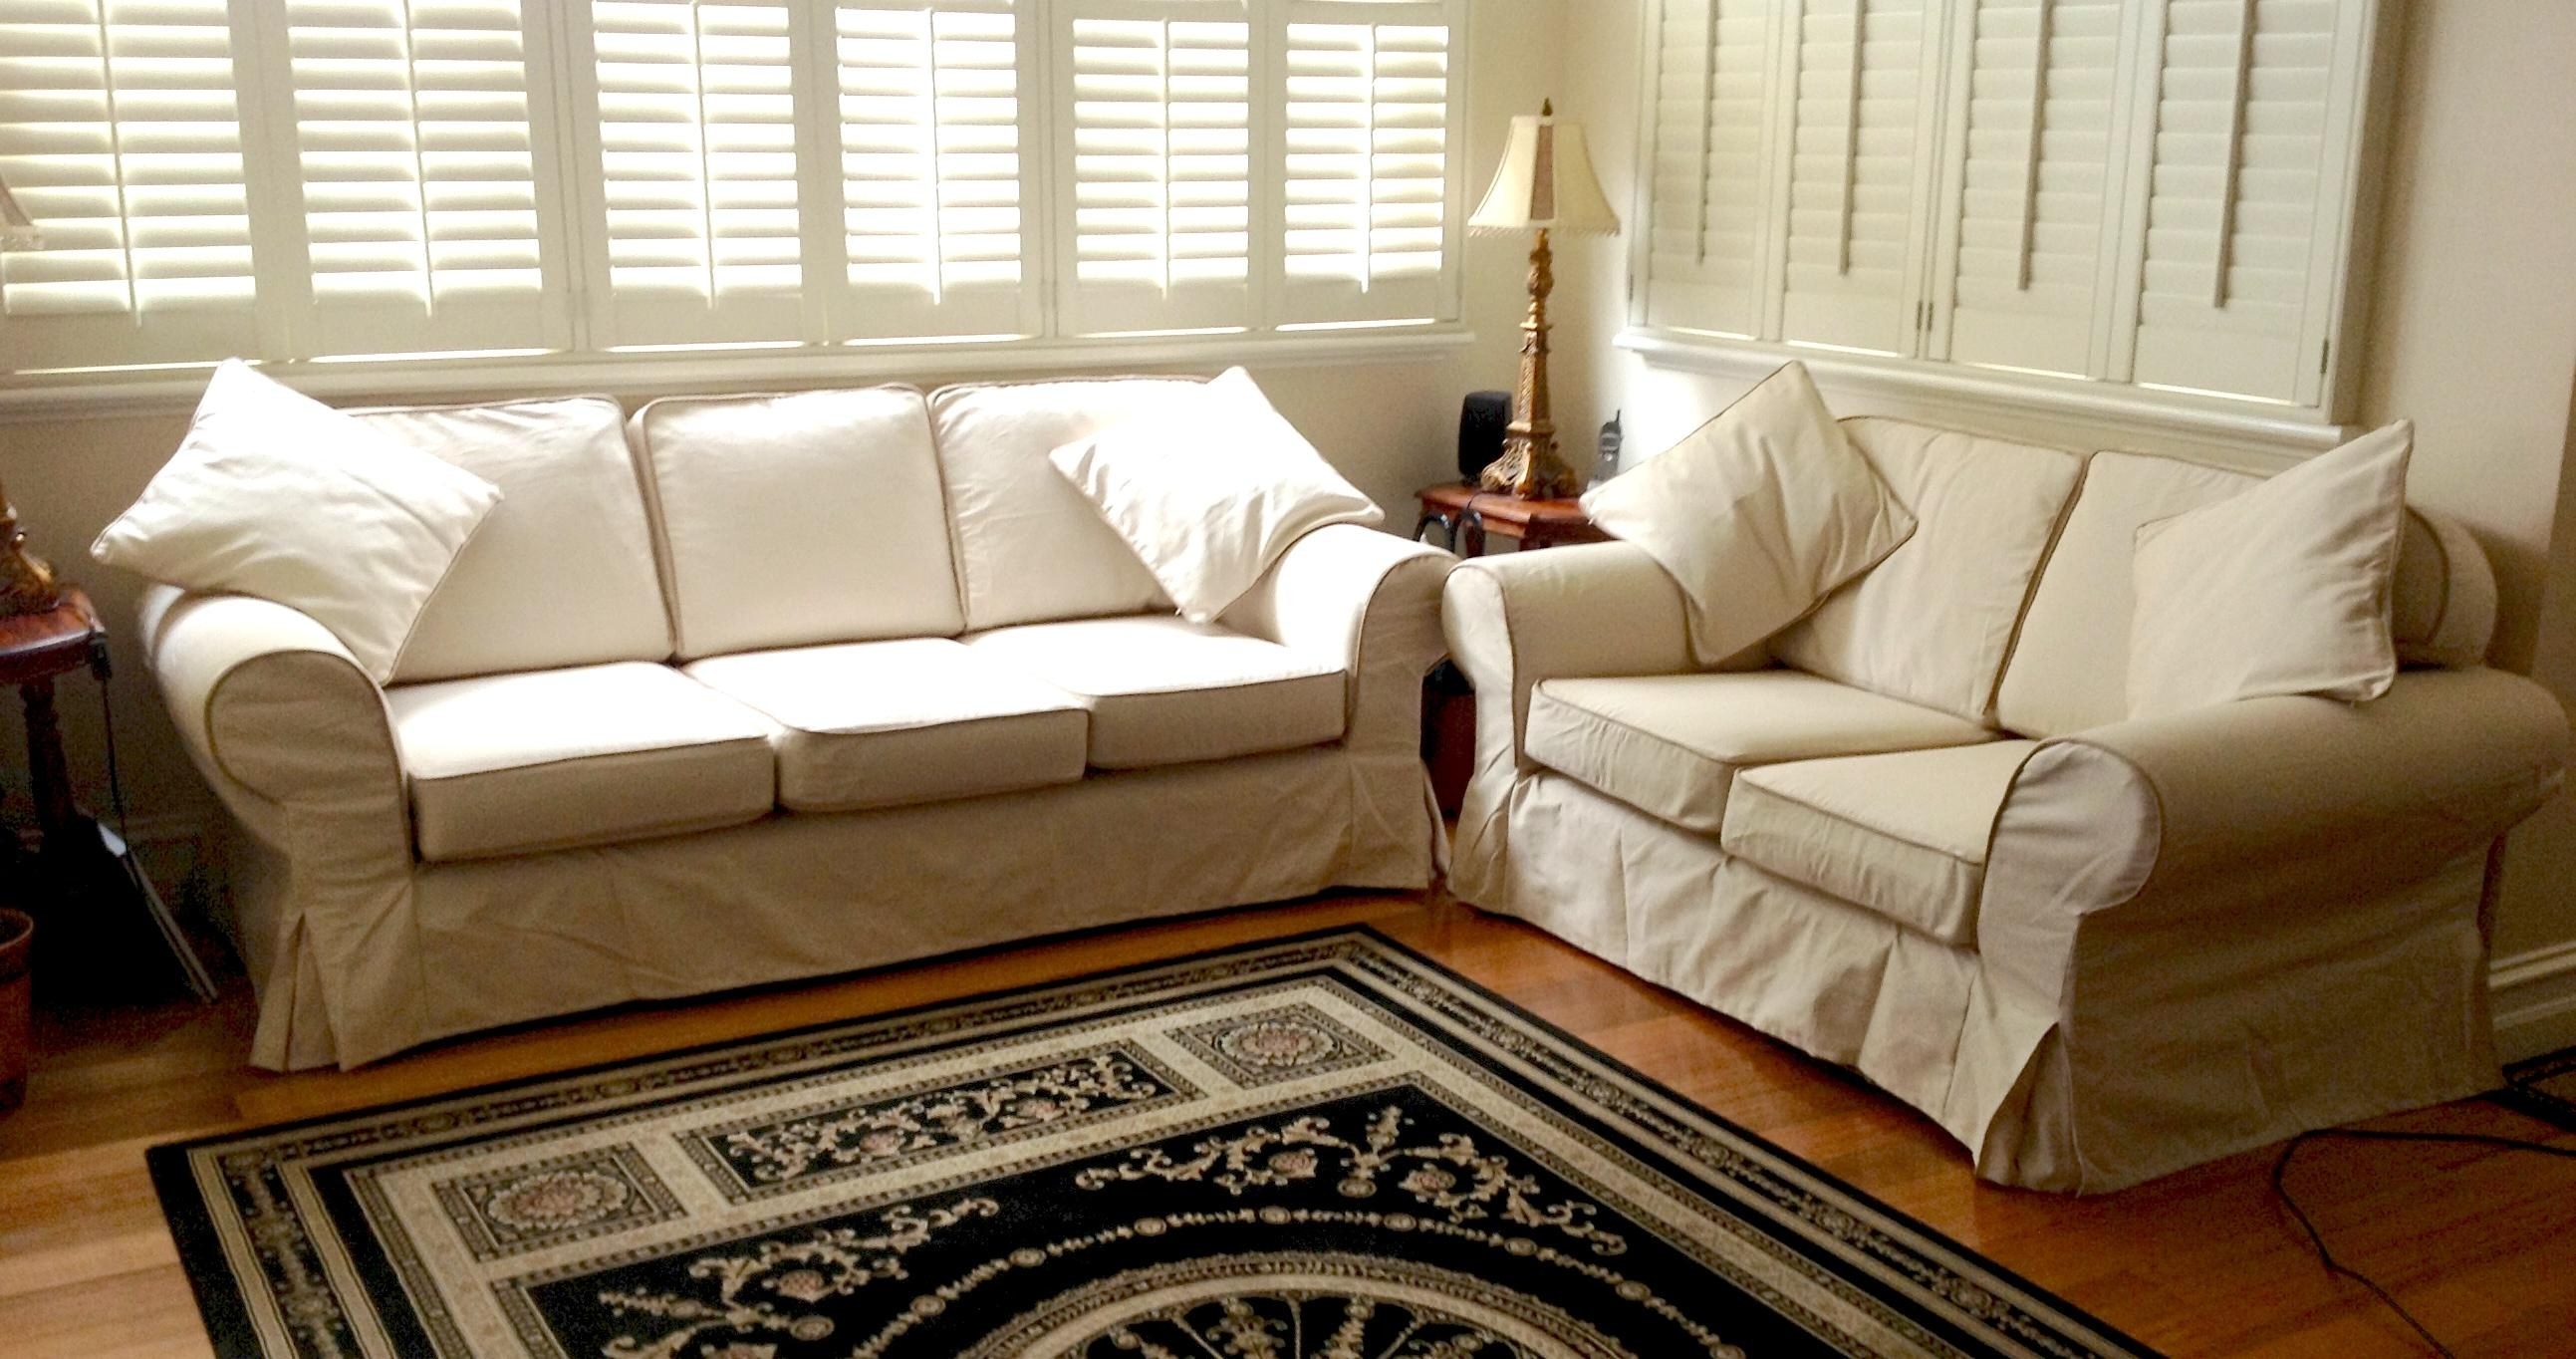 Custom Slipcovers And Couch Cover For Any Sofa Online Inside Sofa Loveseat Slipcovers (Image 4 of 25)